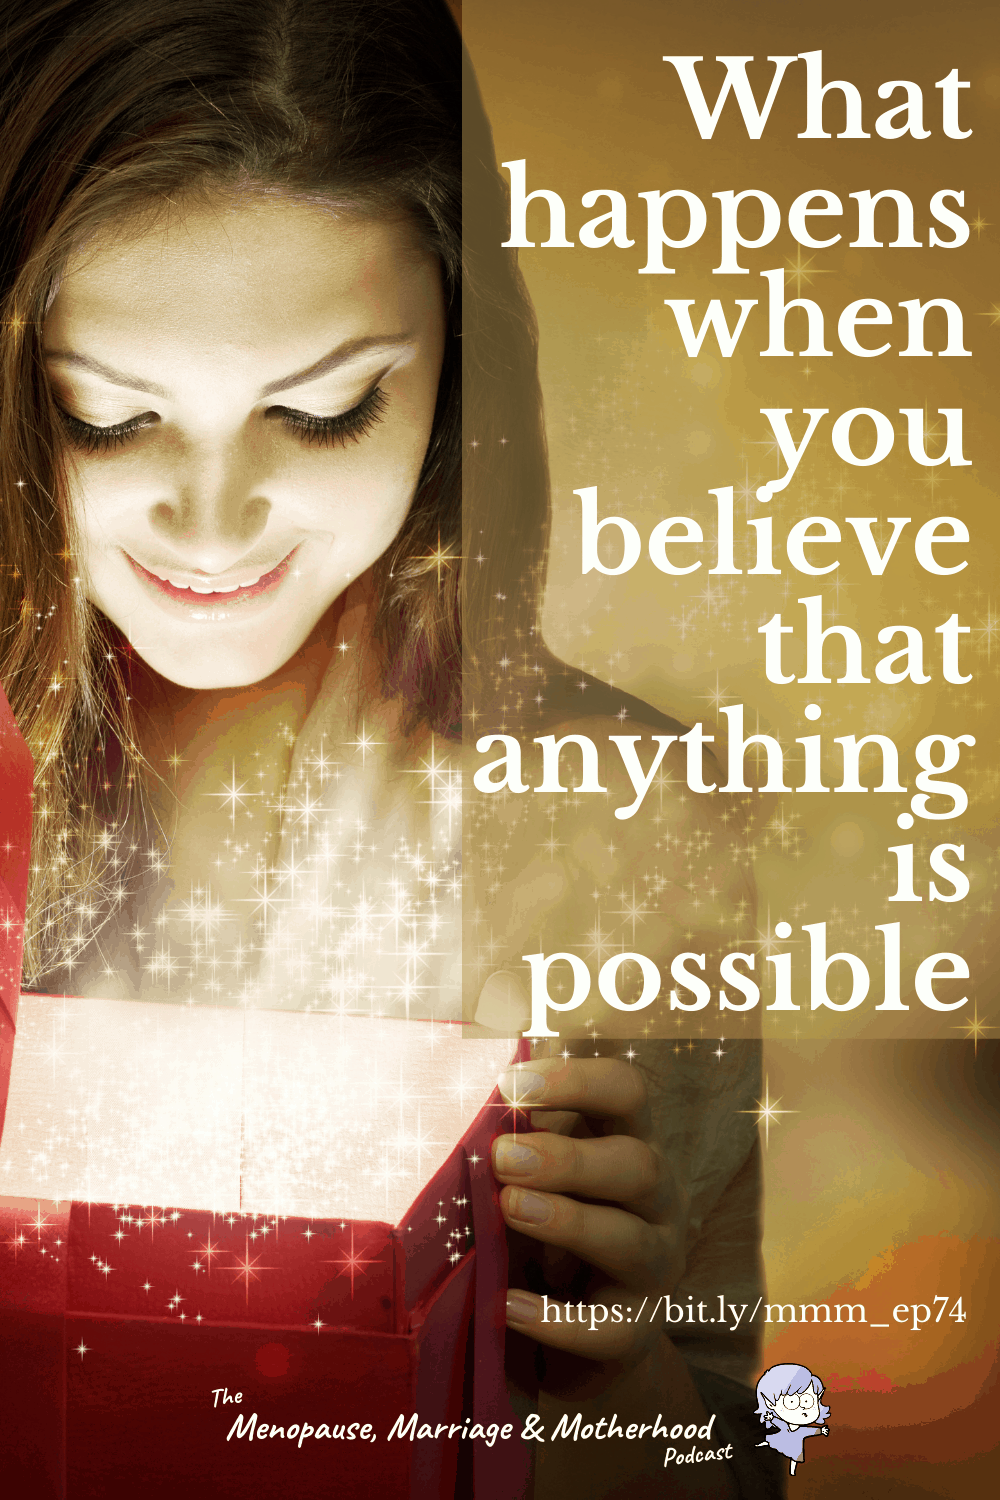 Anything is possible Pin 1